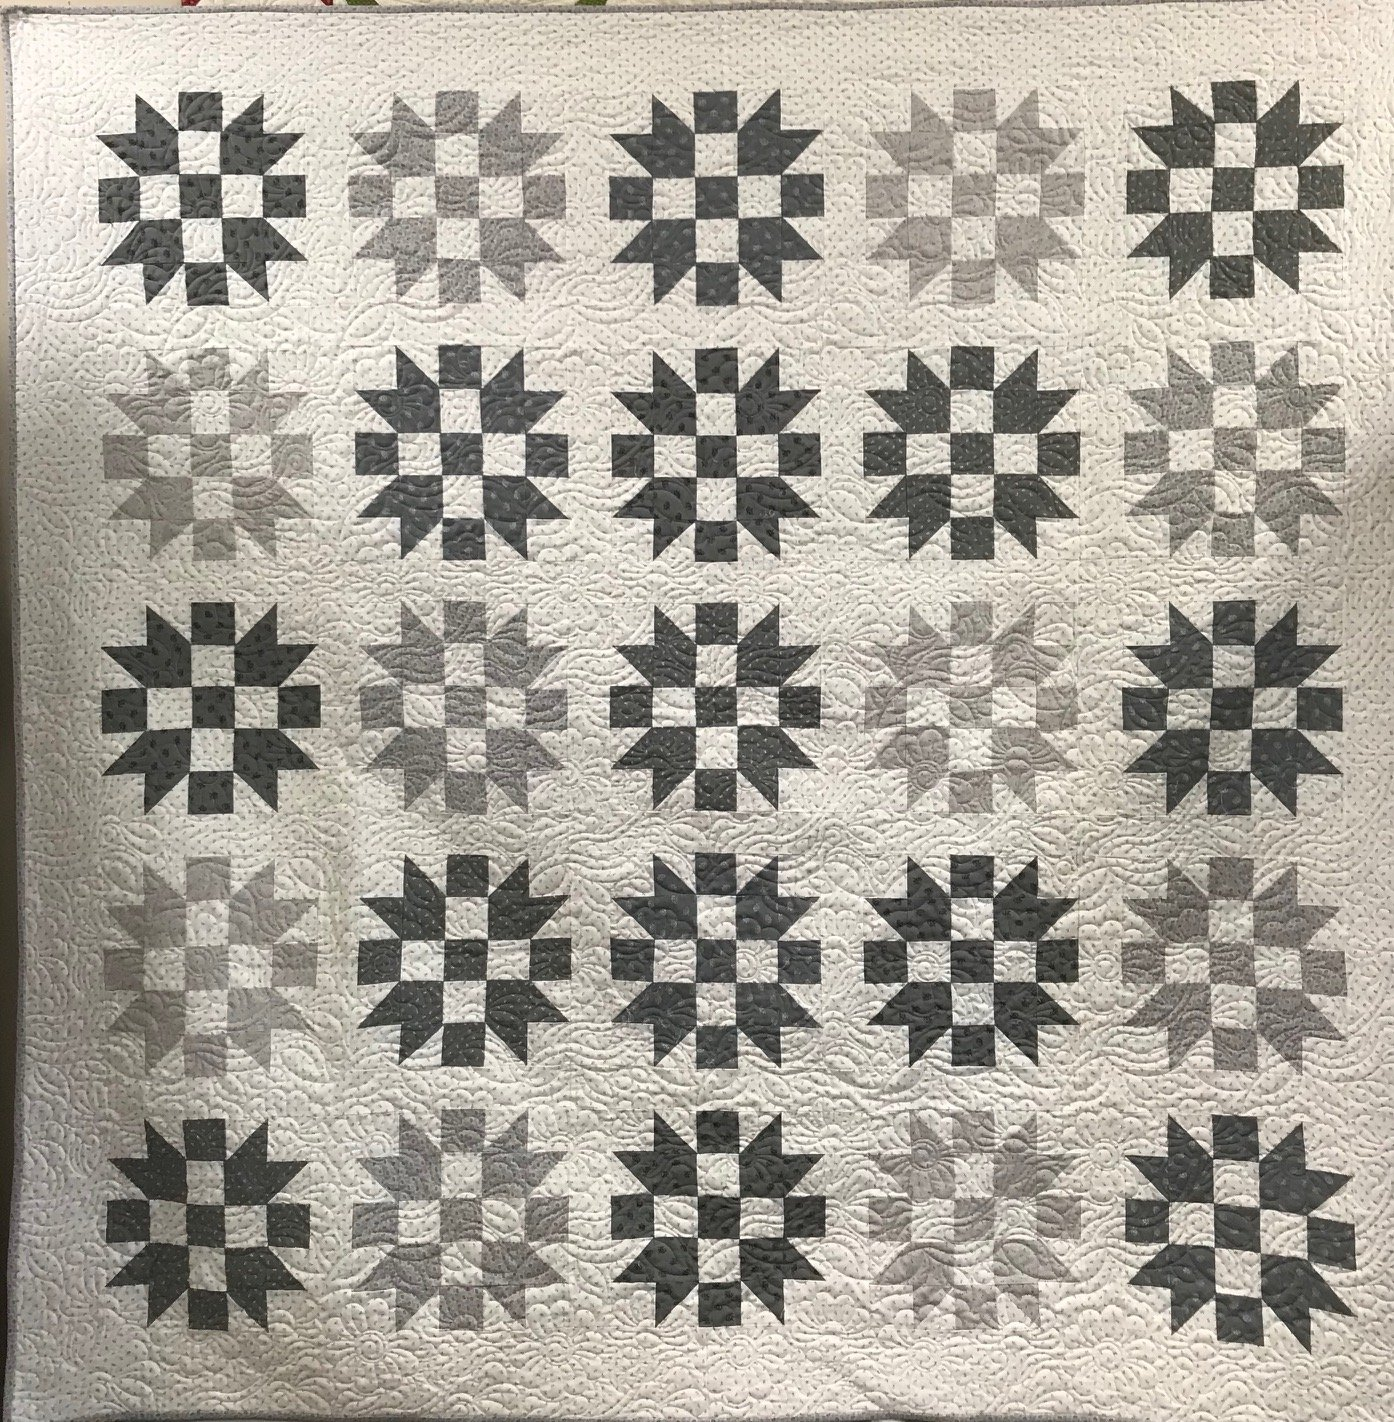 Molly Margaret's quilt